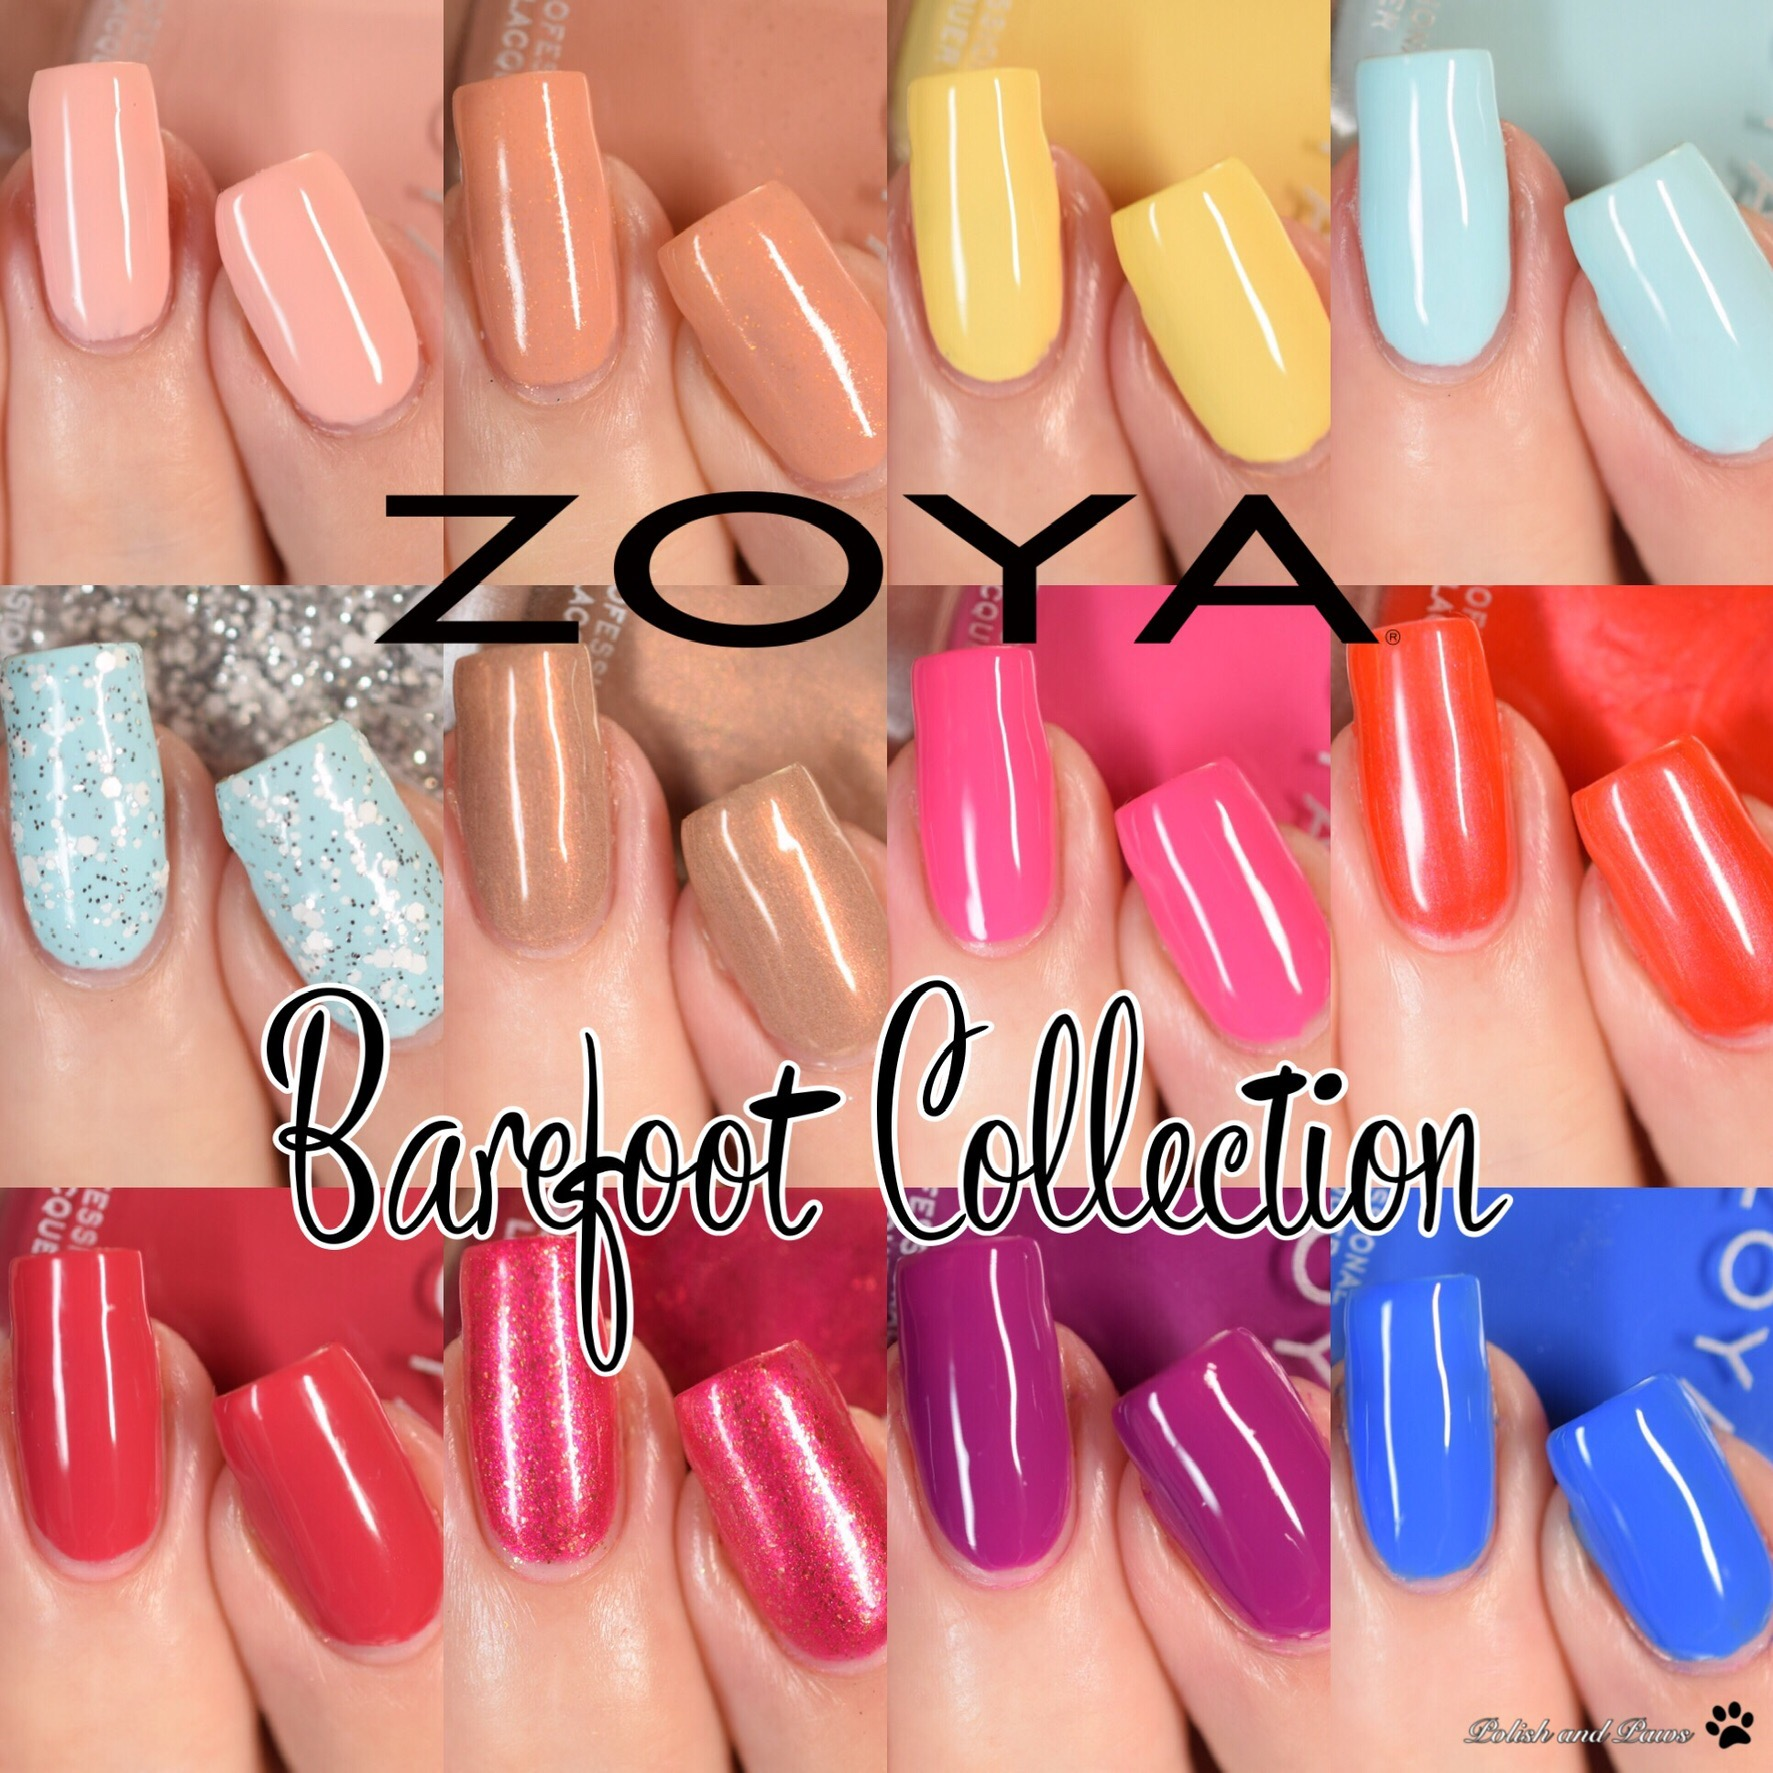 Zoya Barefoot Collection